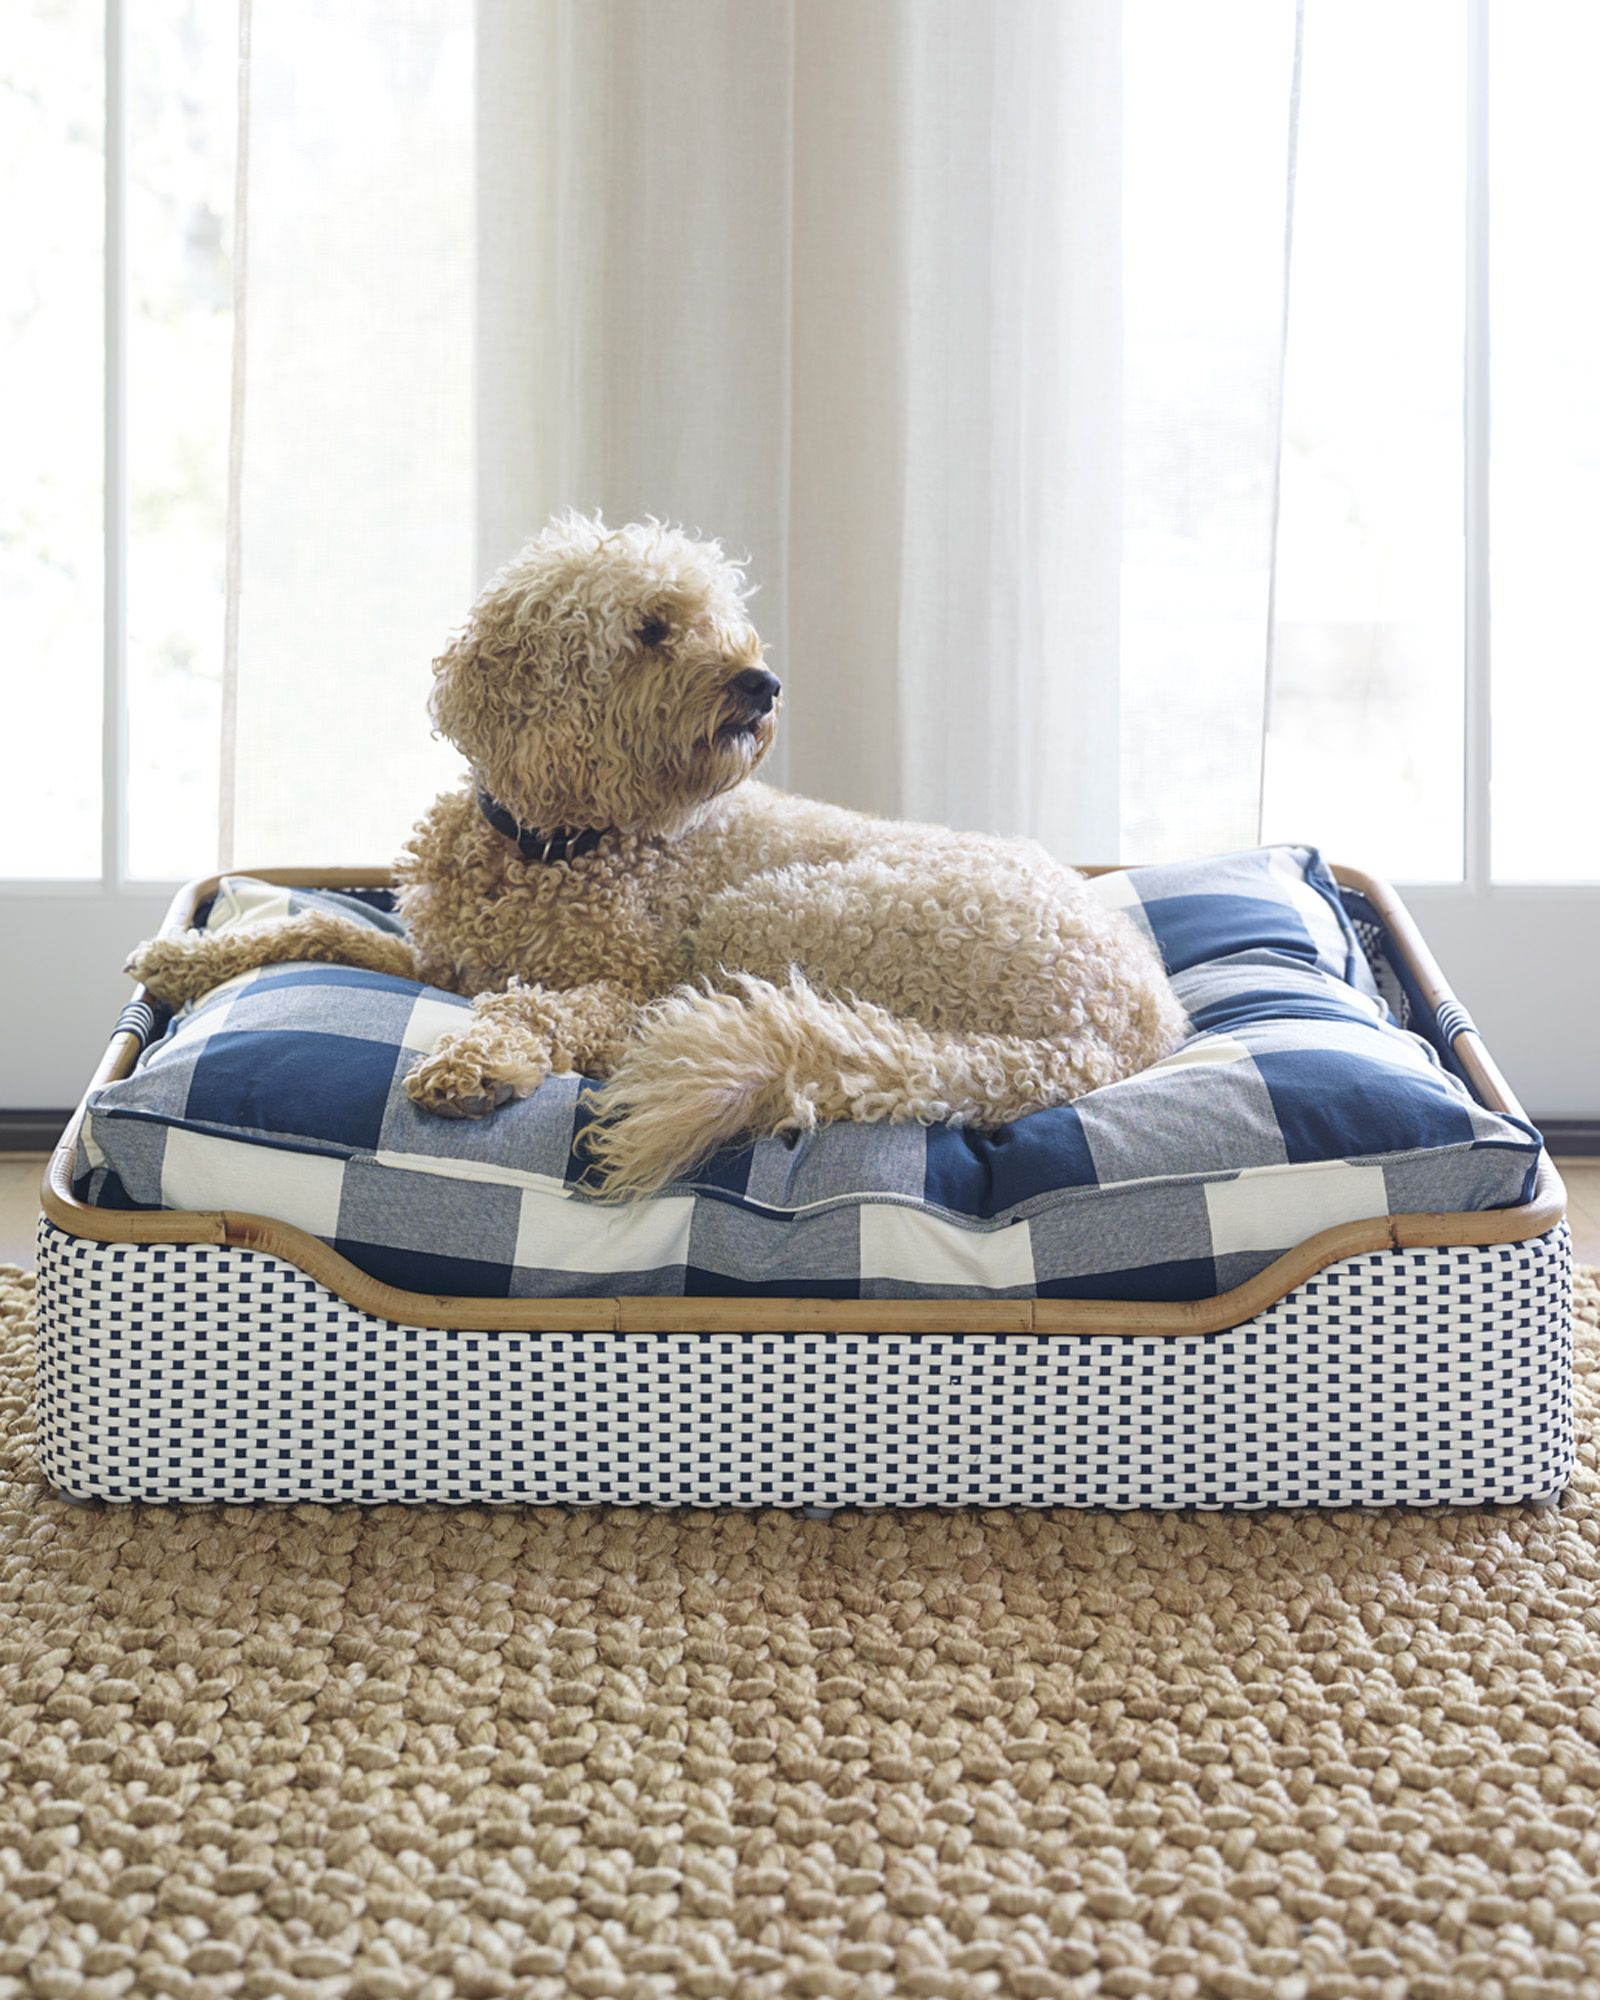 Riviera Dog Bed (With images) Dog bed, Medium dog bed, Bed